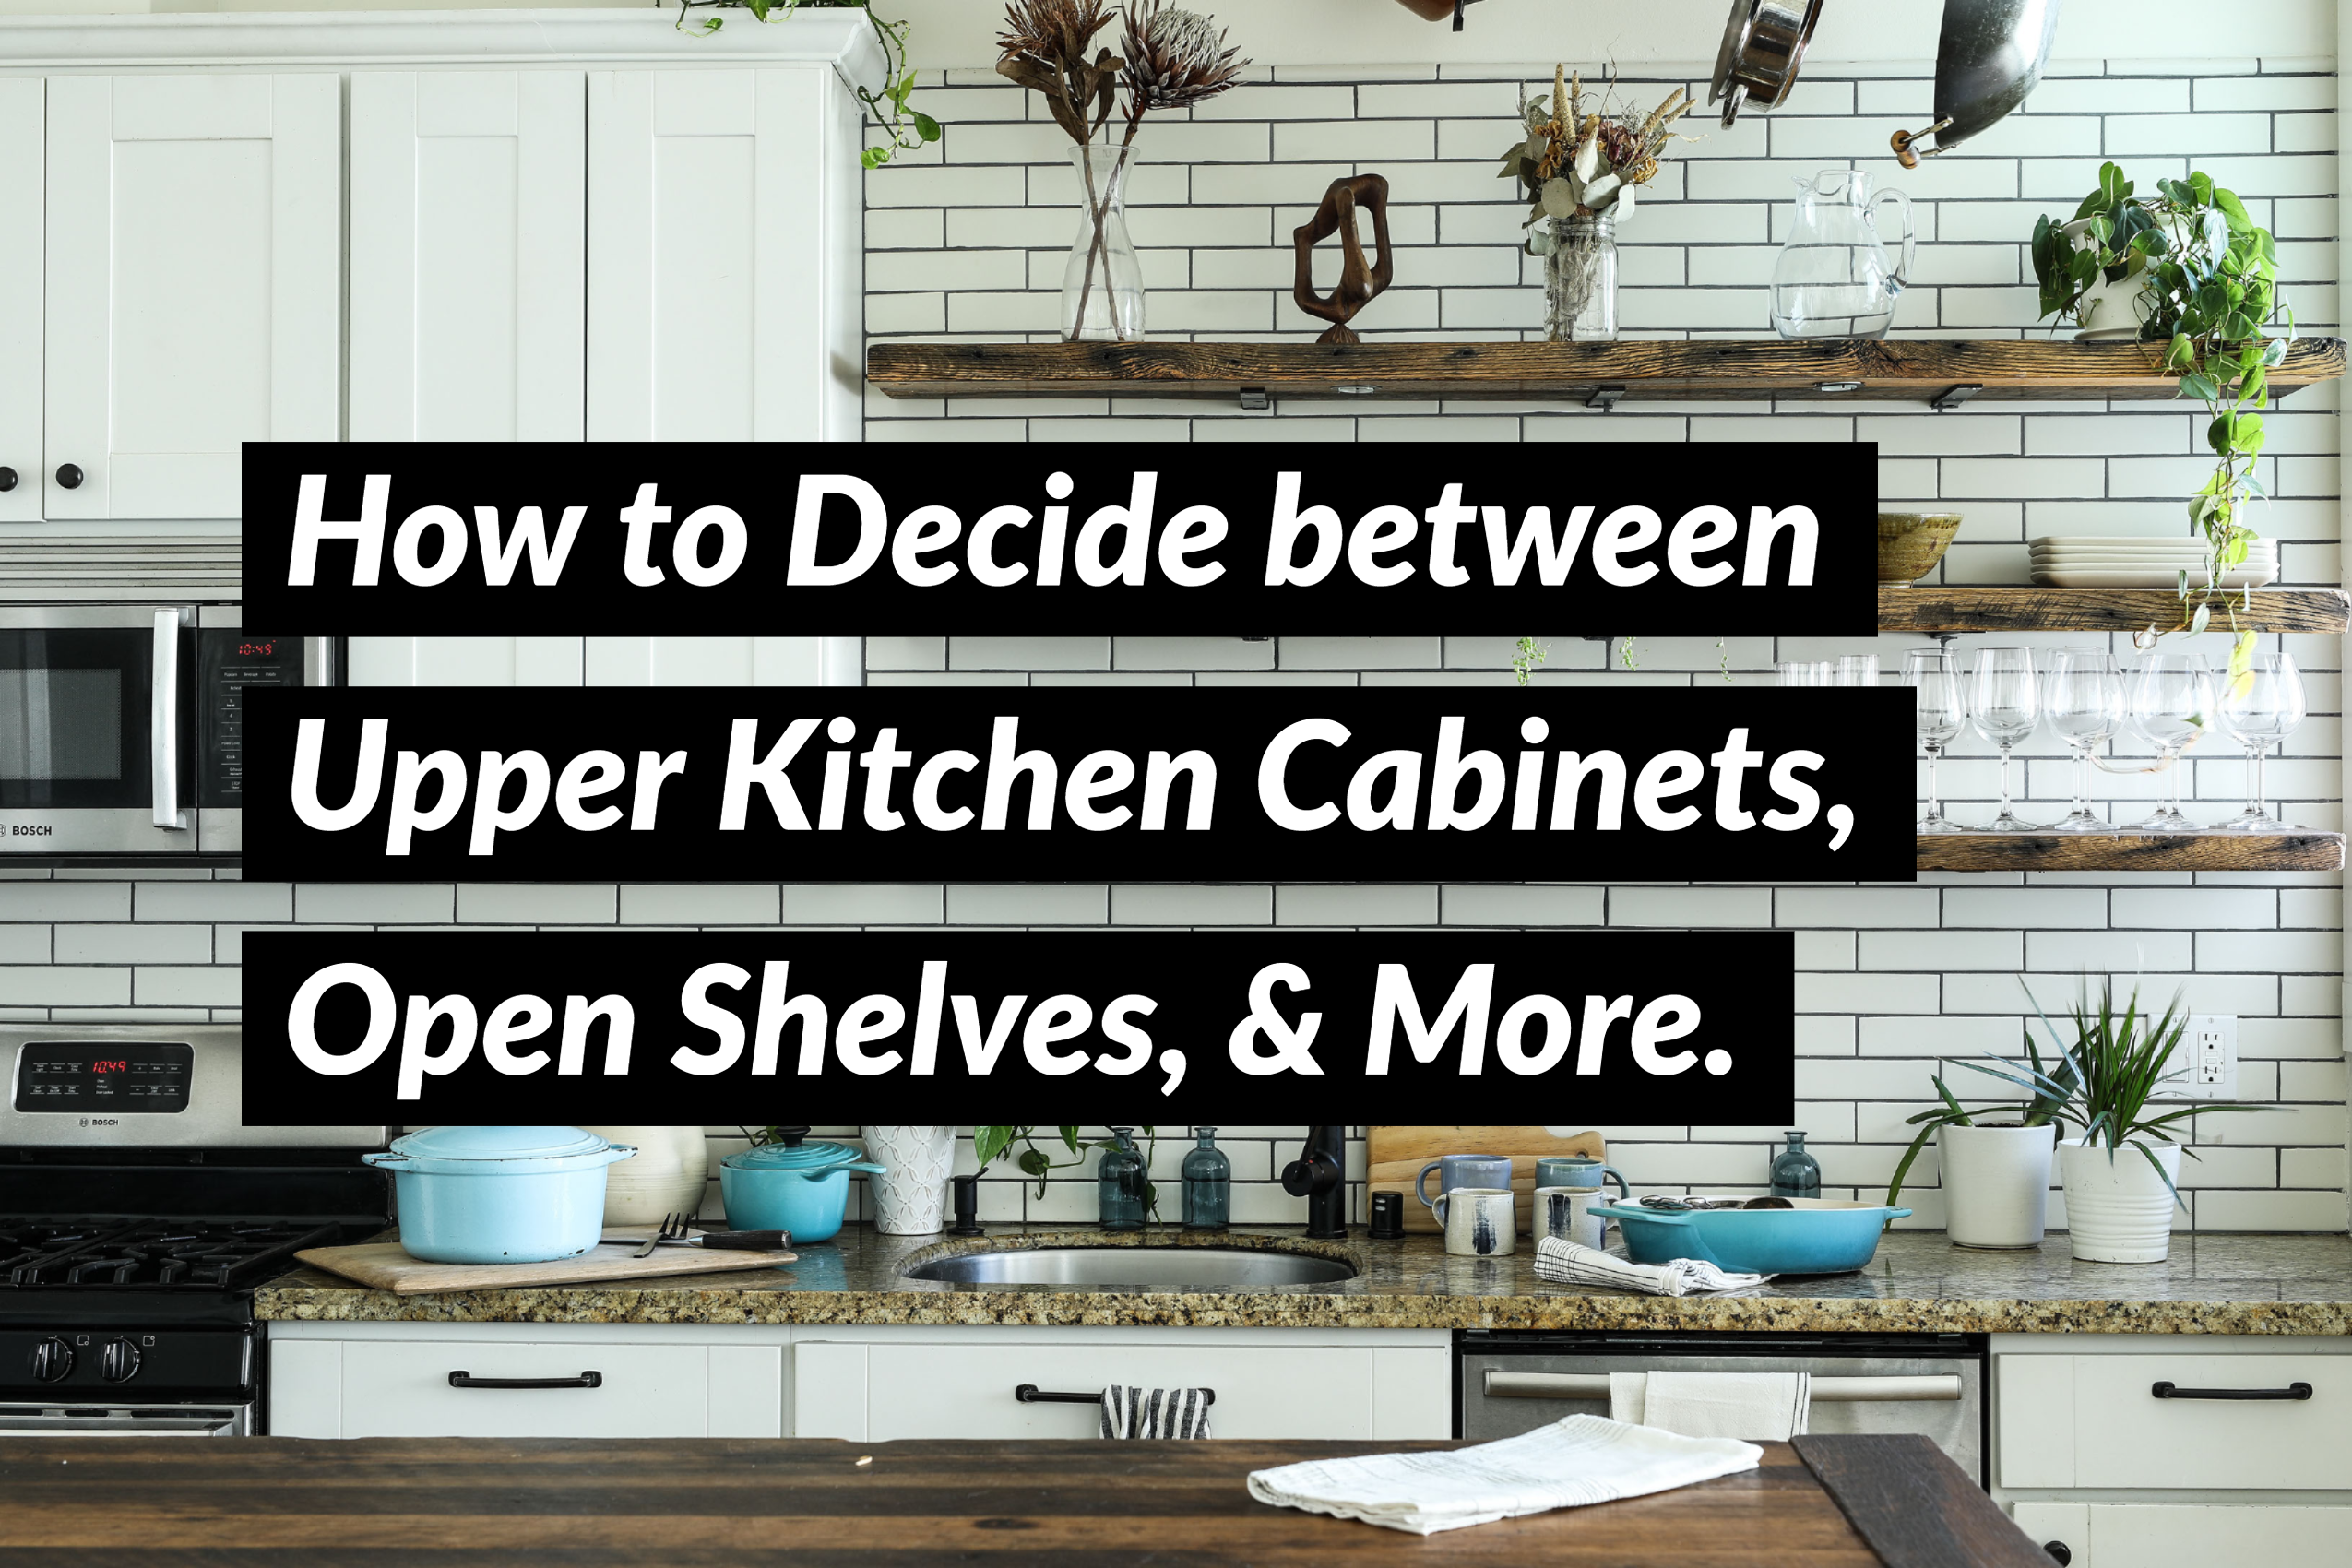 How To Decide Between Diy Upper Kitchen Cabinets Open Shelves And More Cabinet Now